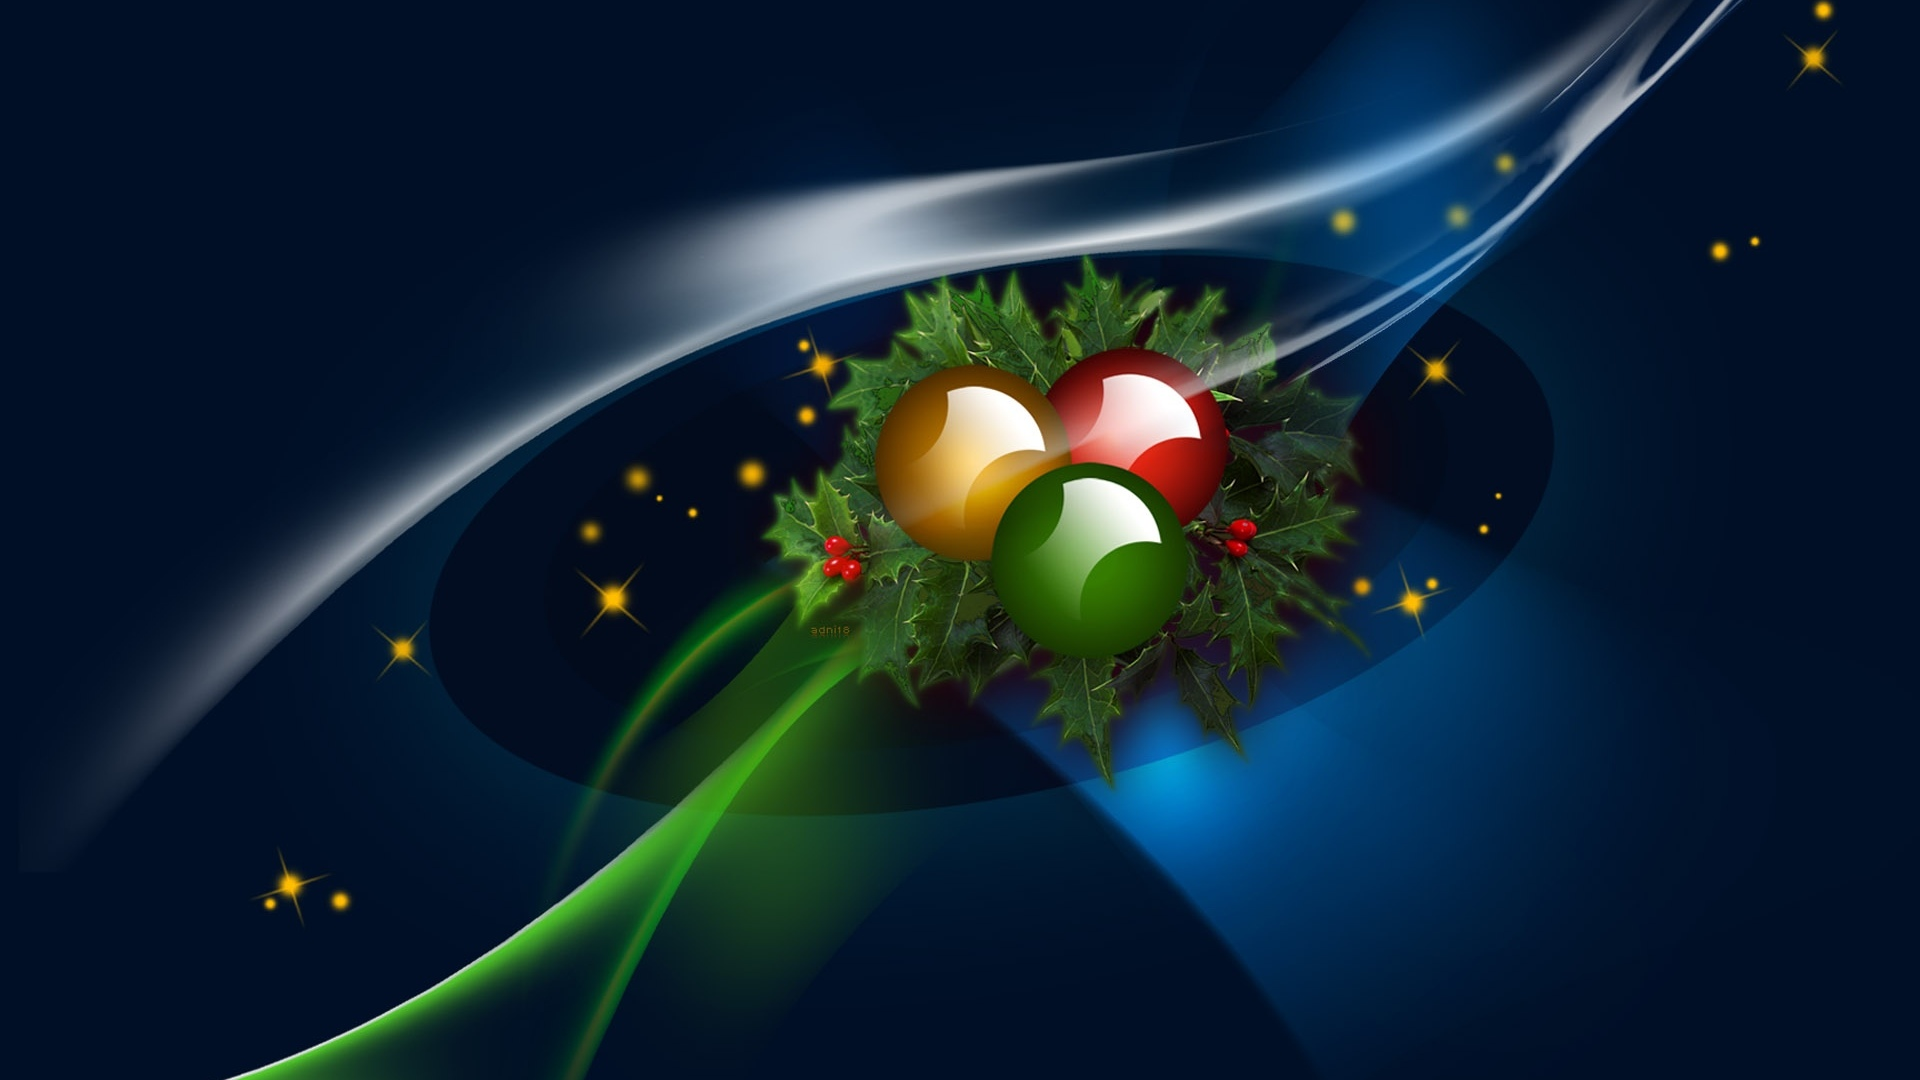 Beautiful HD 3D Christmas Wallpapers E Entertainment 1920x1080